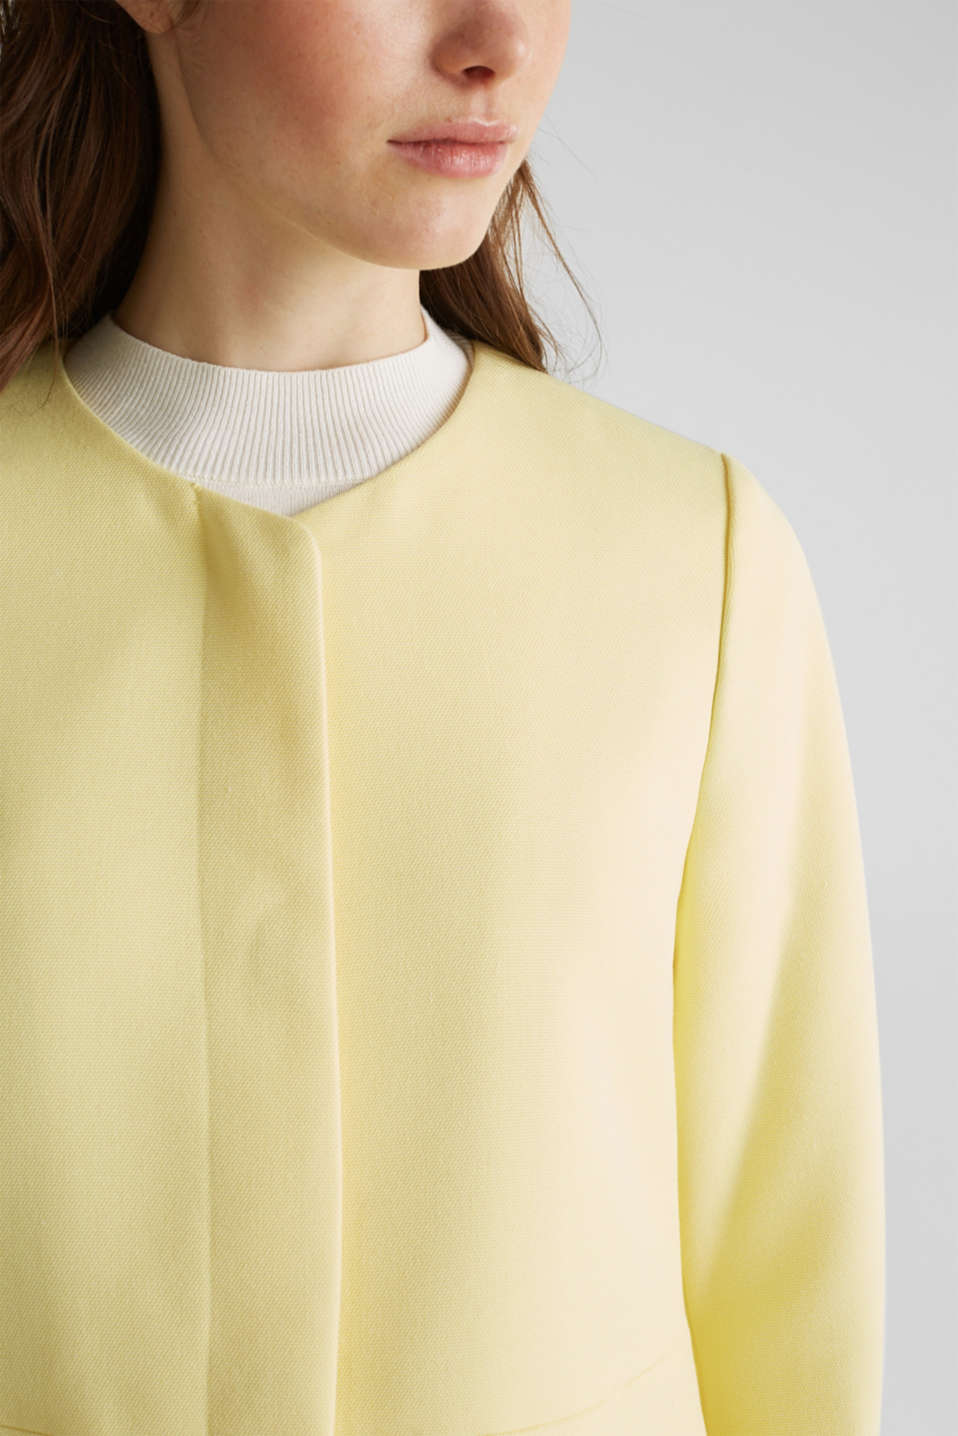 Coat with piqué texture, LIME YELLOW, detail image number 5